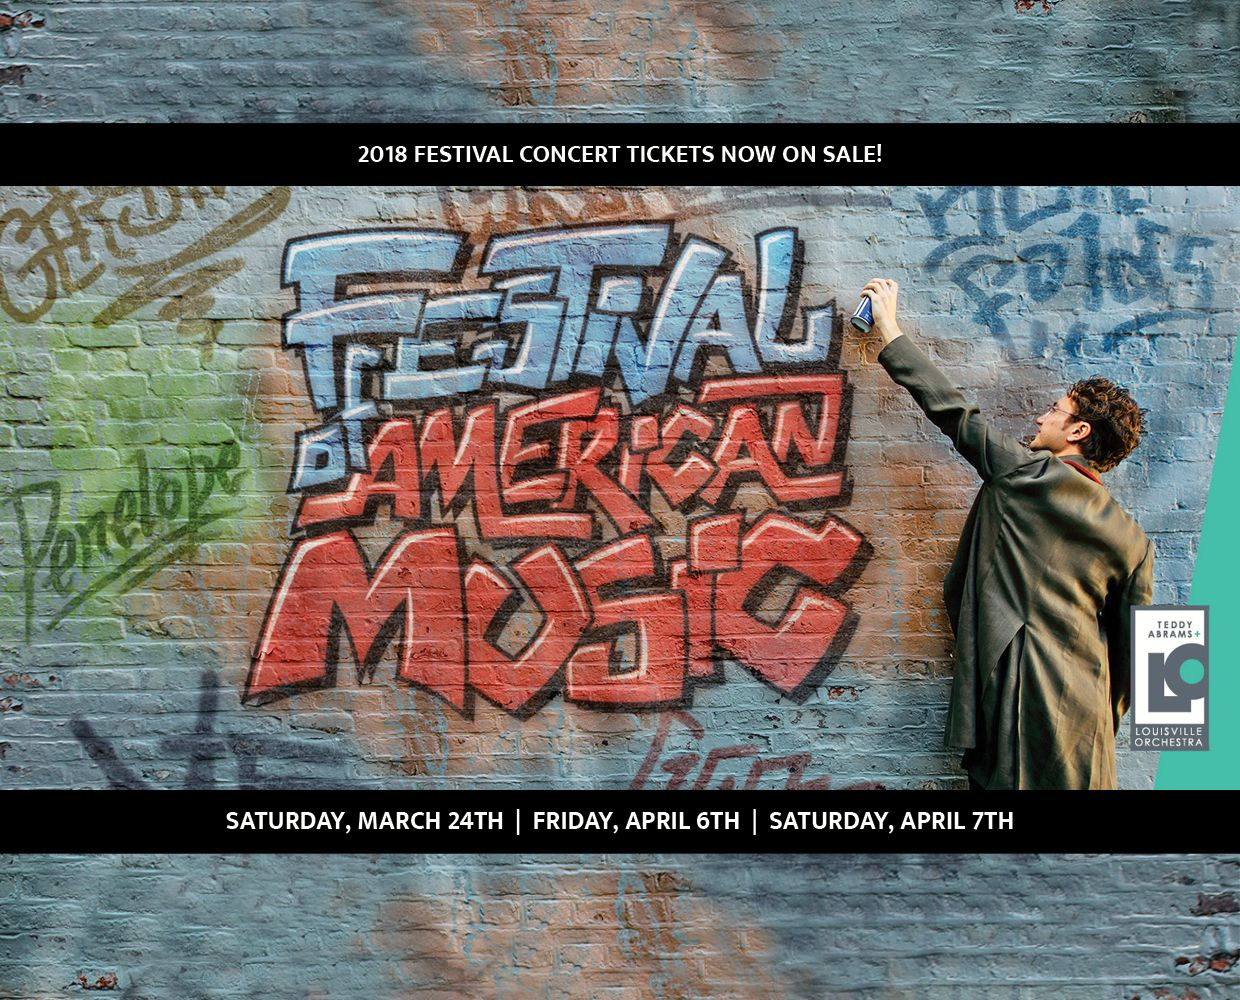 March 24 - April 7 - Festival of American Music image